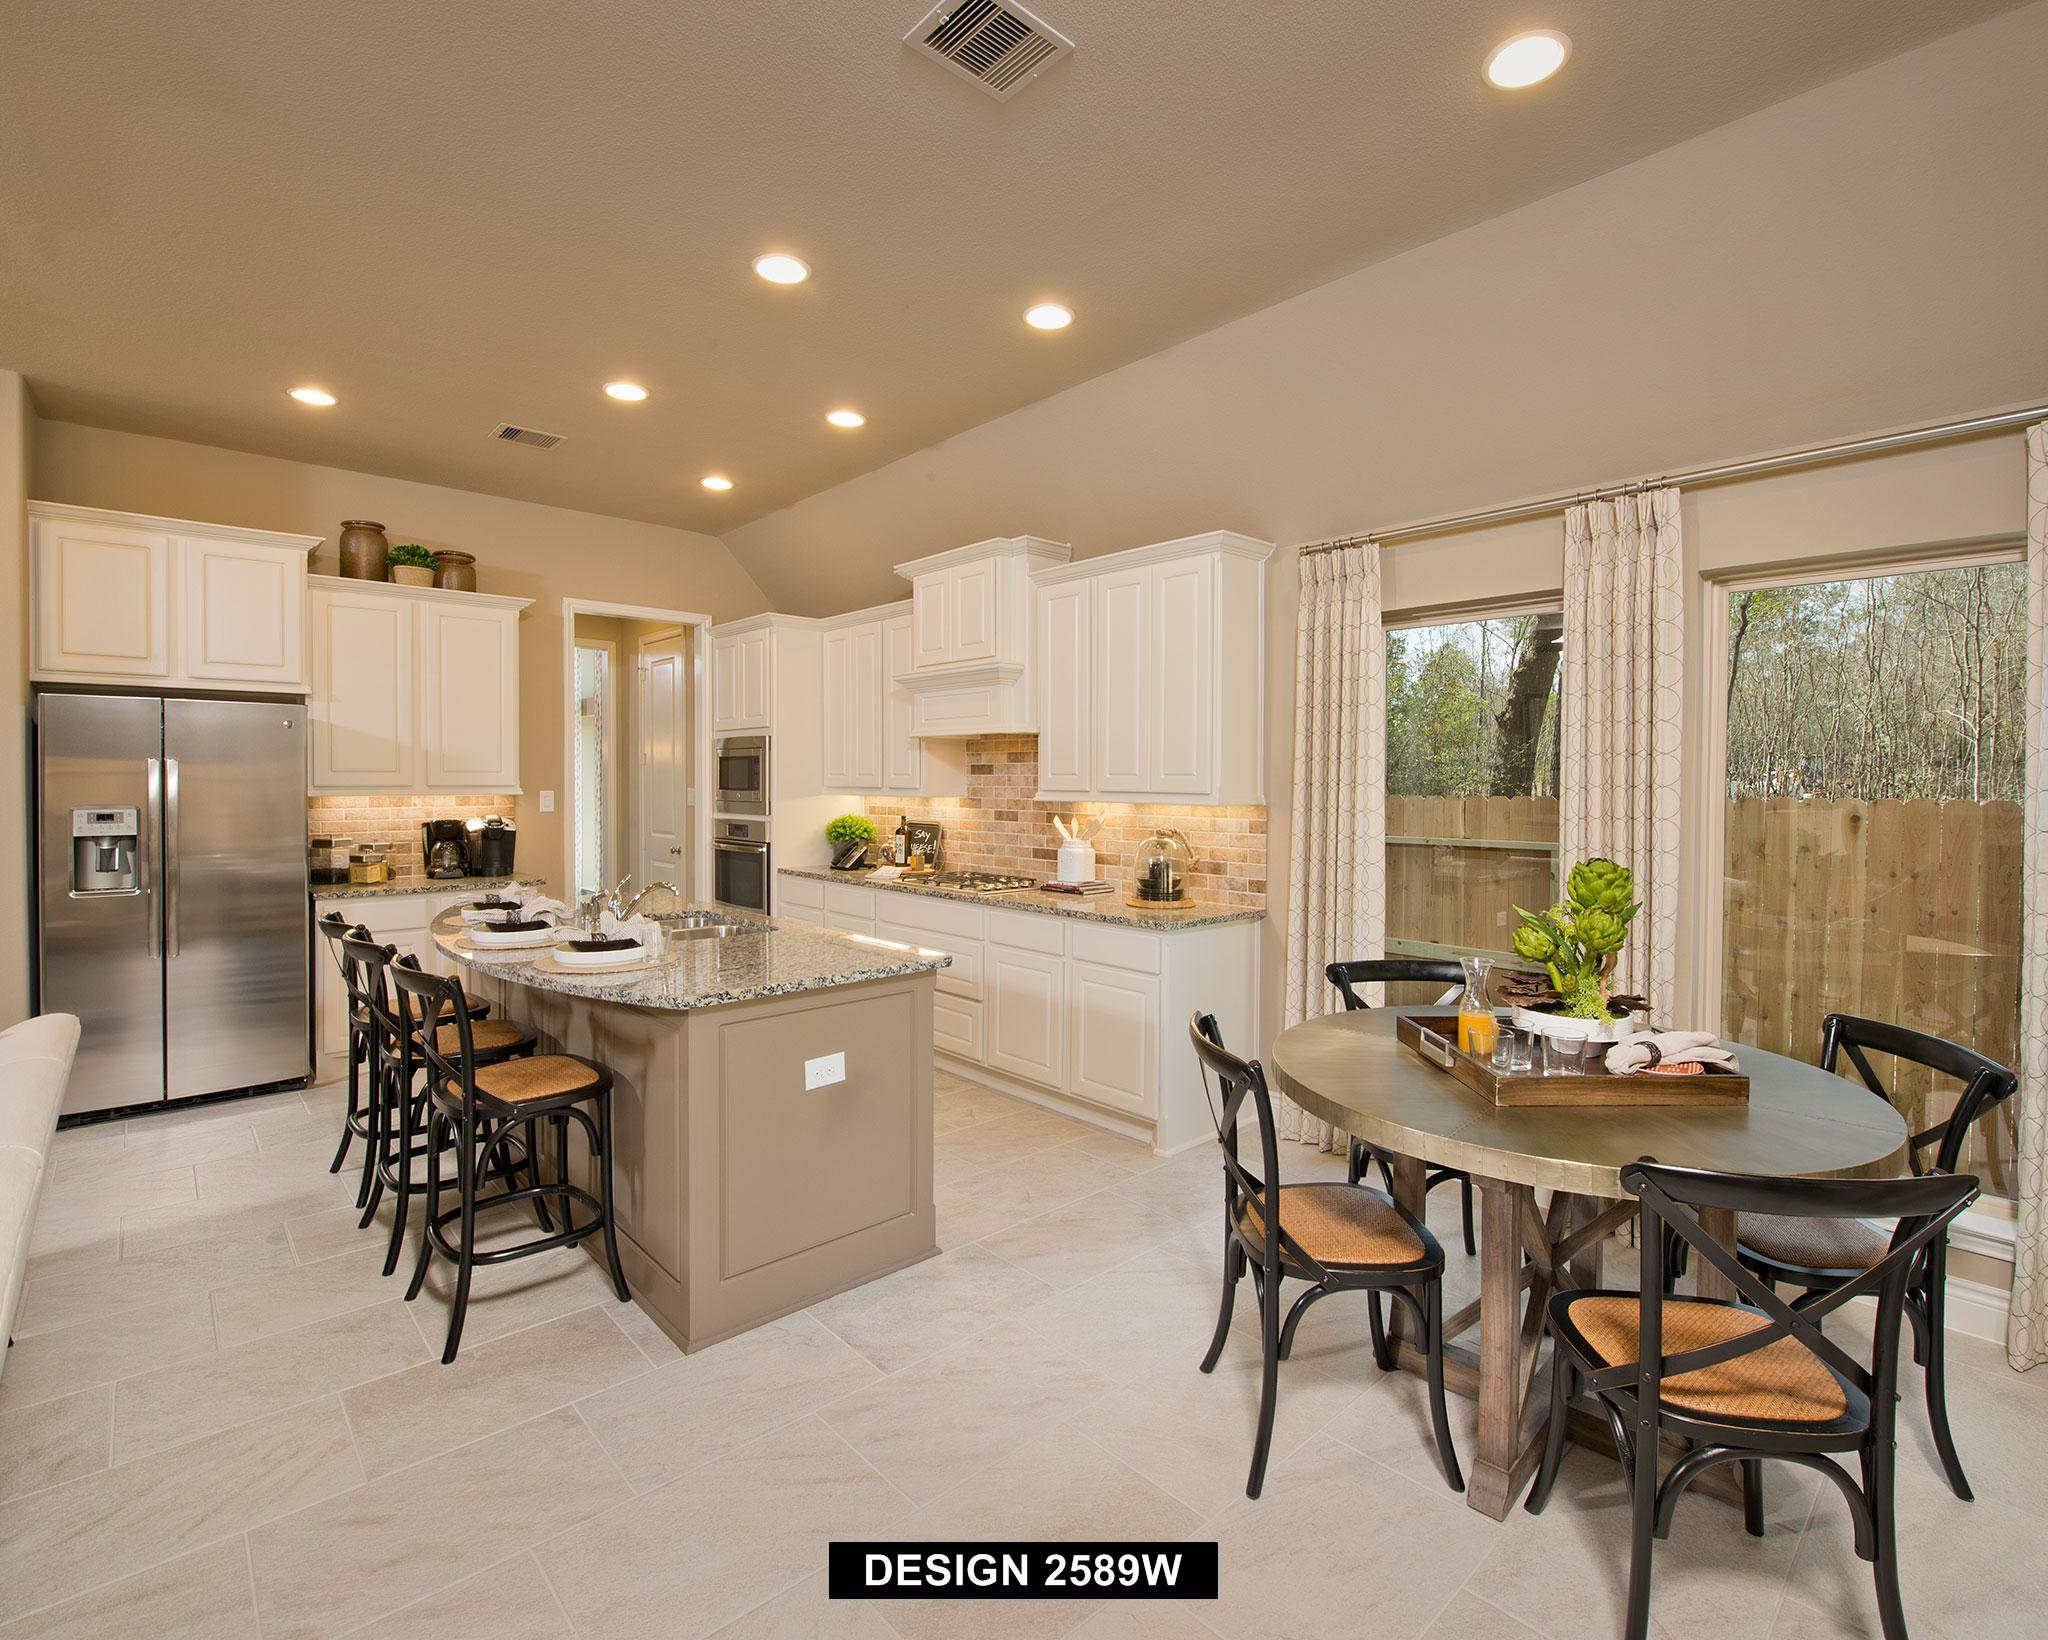 Kitchen-in-2589W-at-The Groves 50'-in-Humble